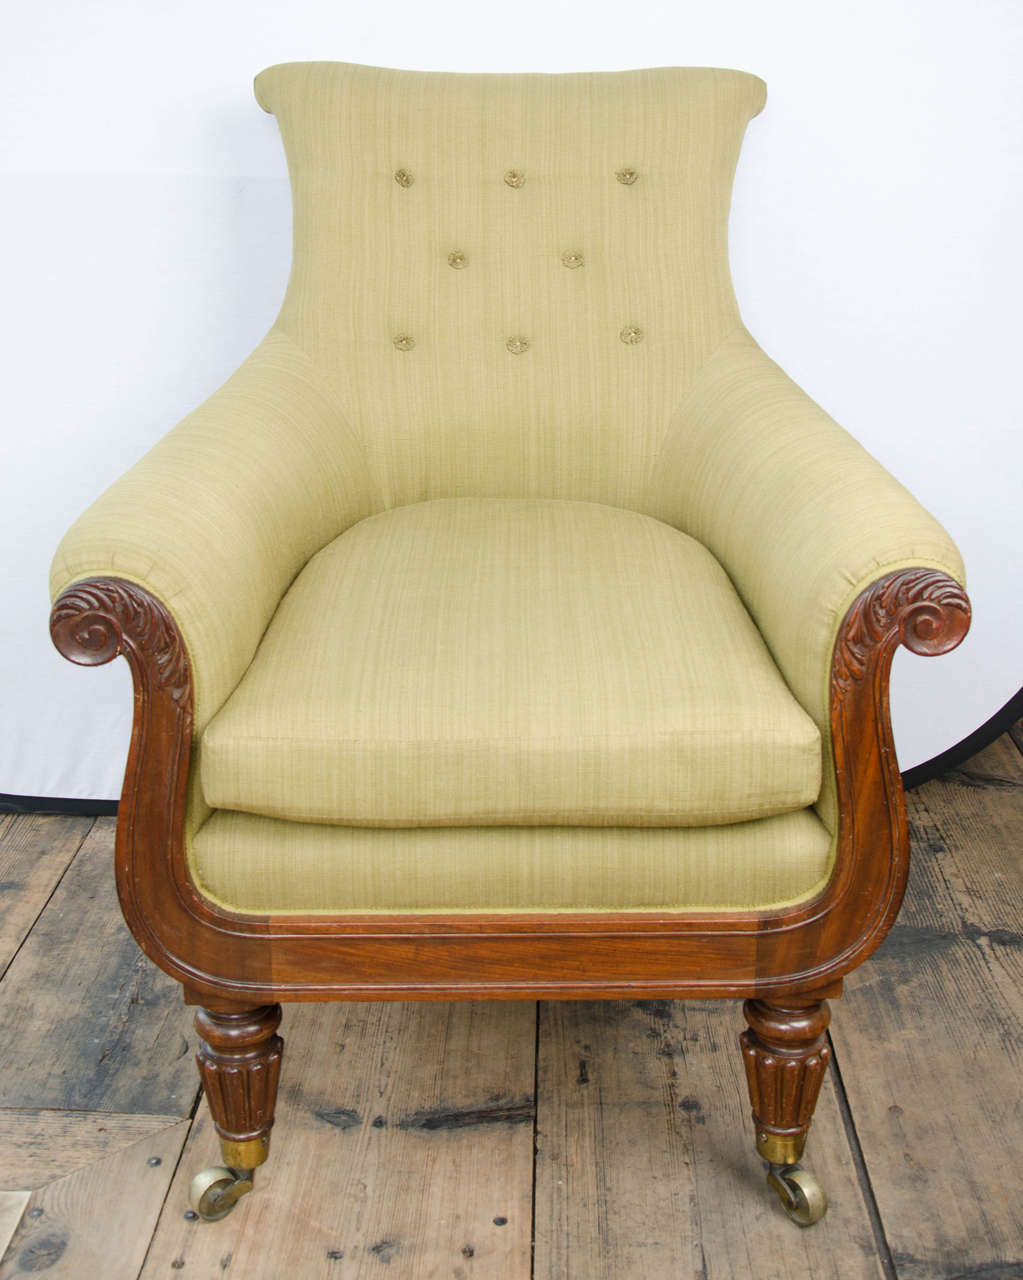 Regency mahogany library bergere in the manner of Gillows with outscrolled back and arms on reeded tapering legs.